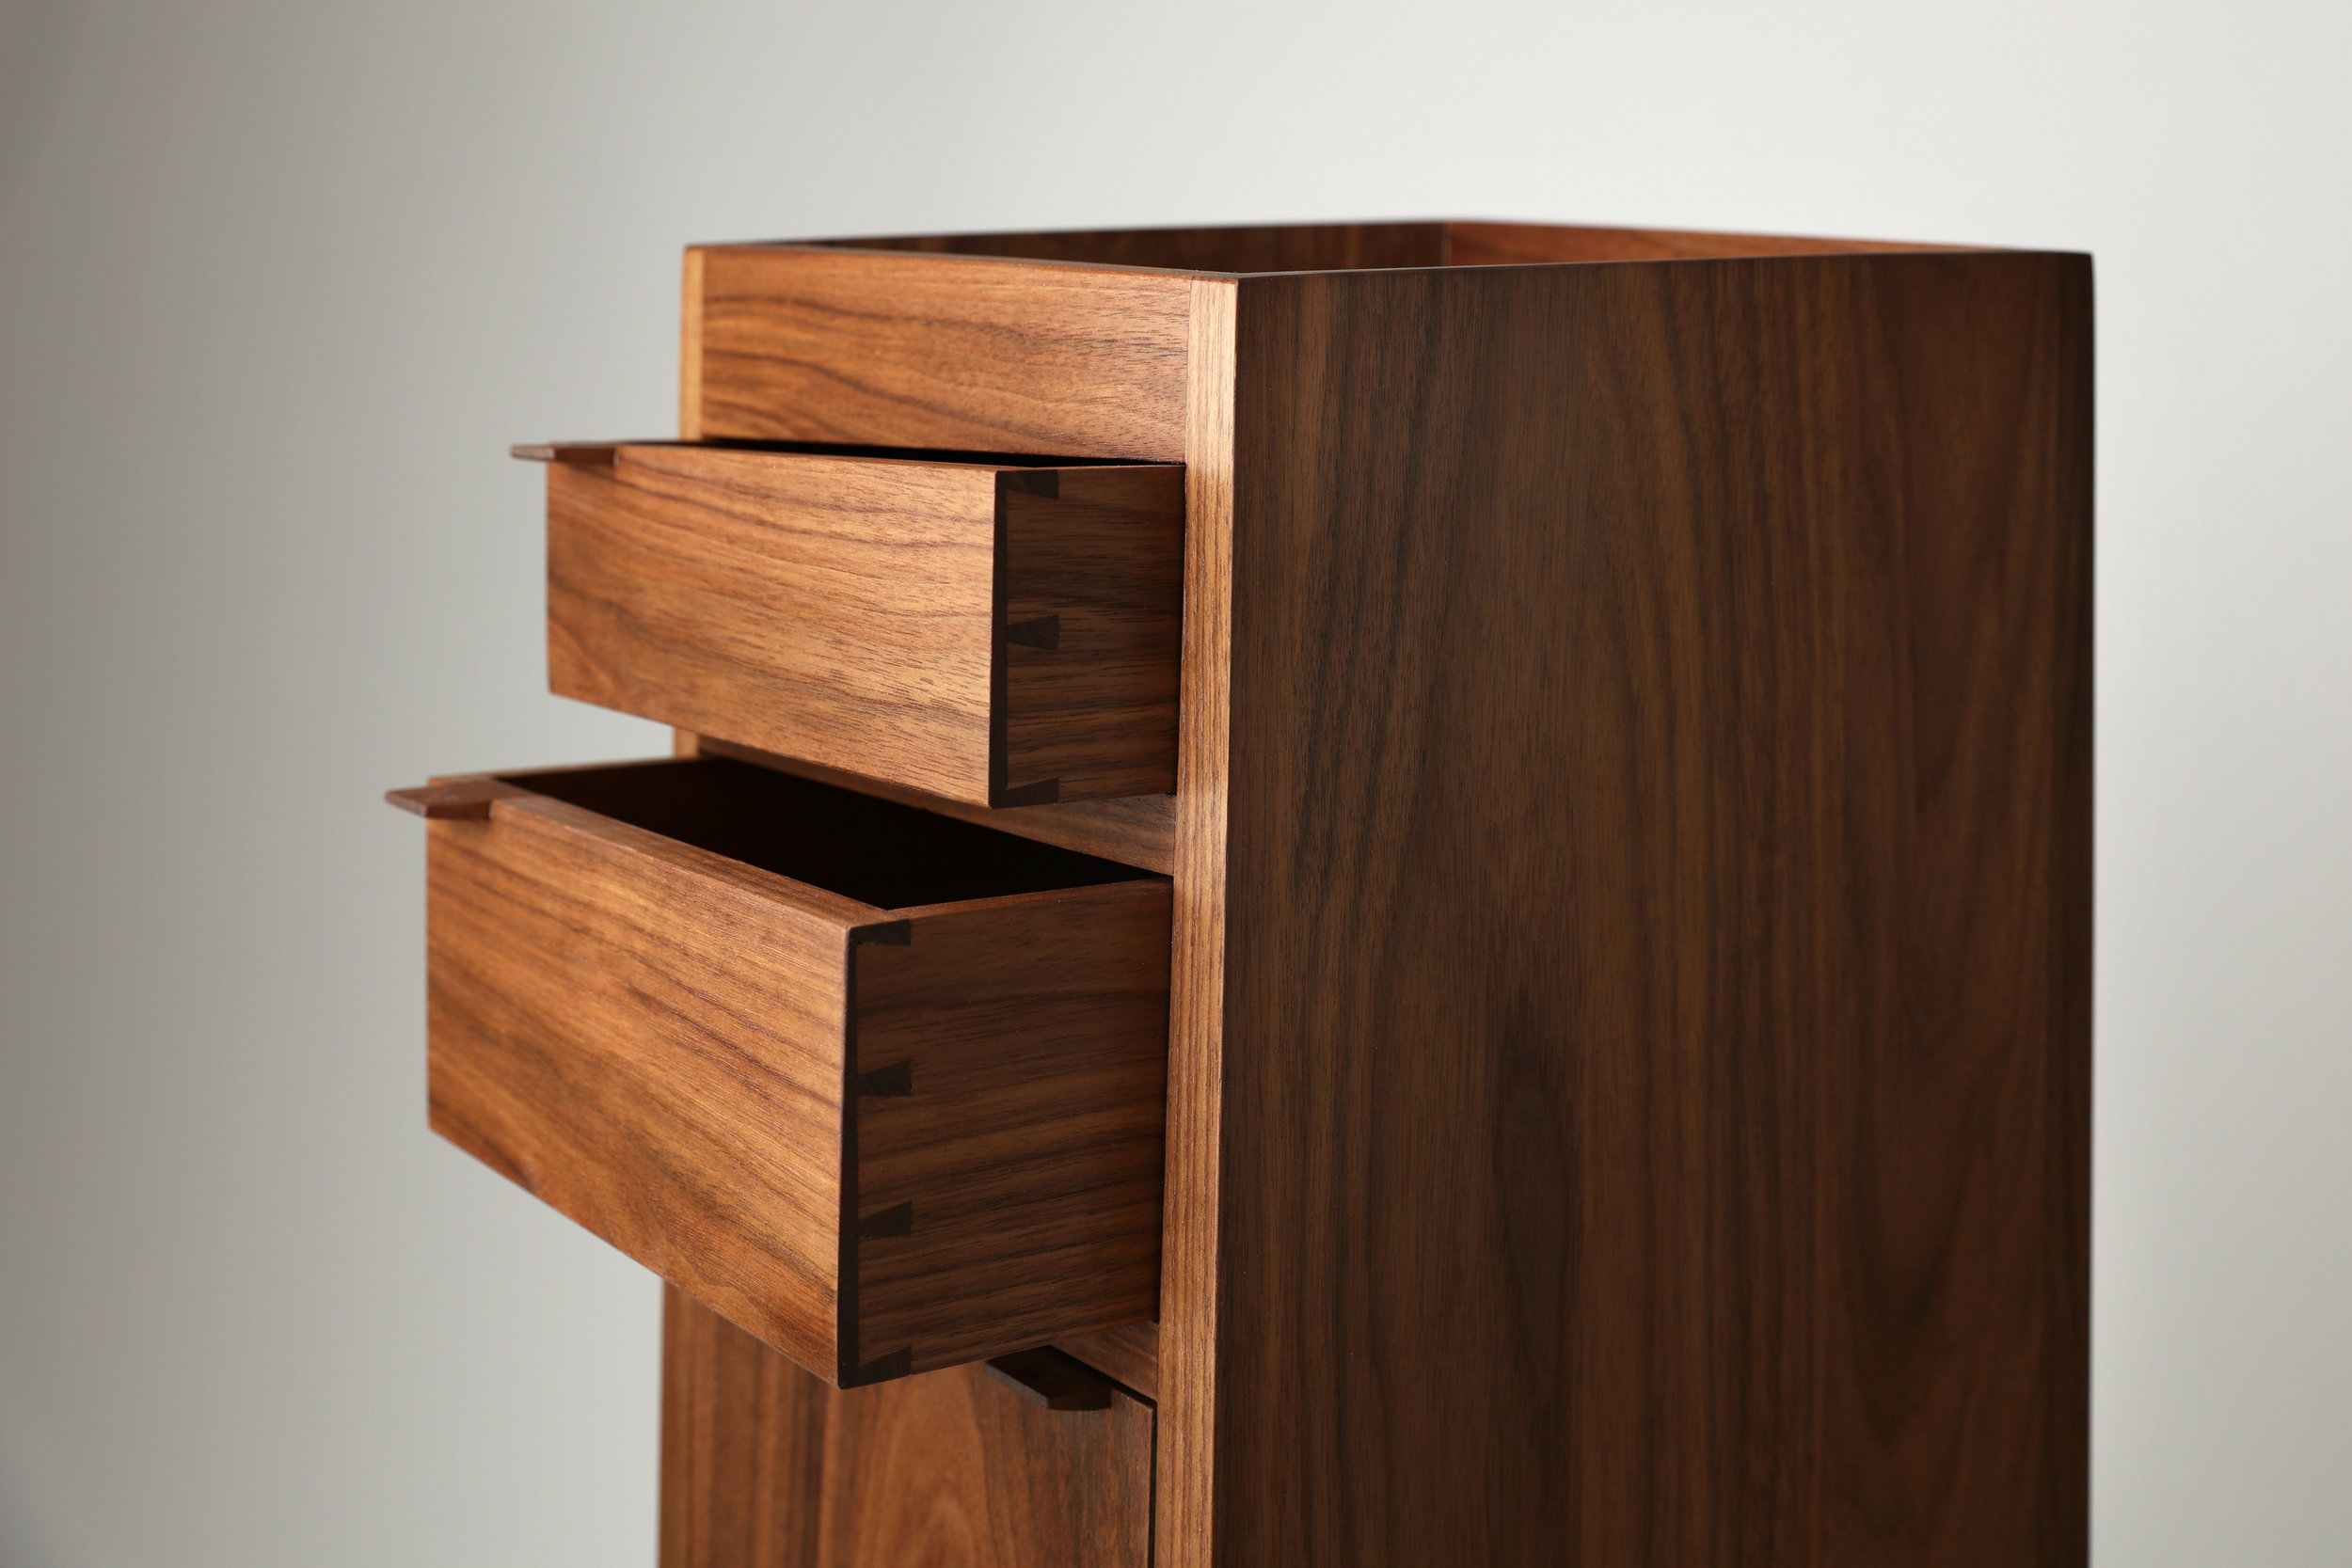 dovetailed-drawers-modern-night-stand-cabinet.jpg